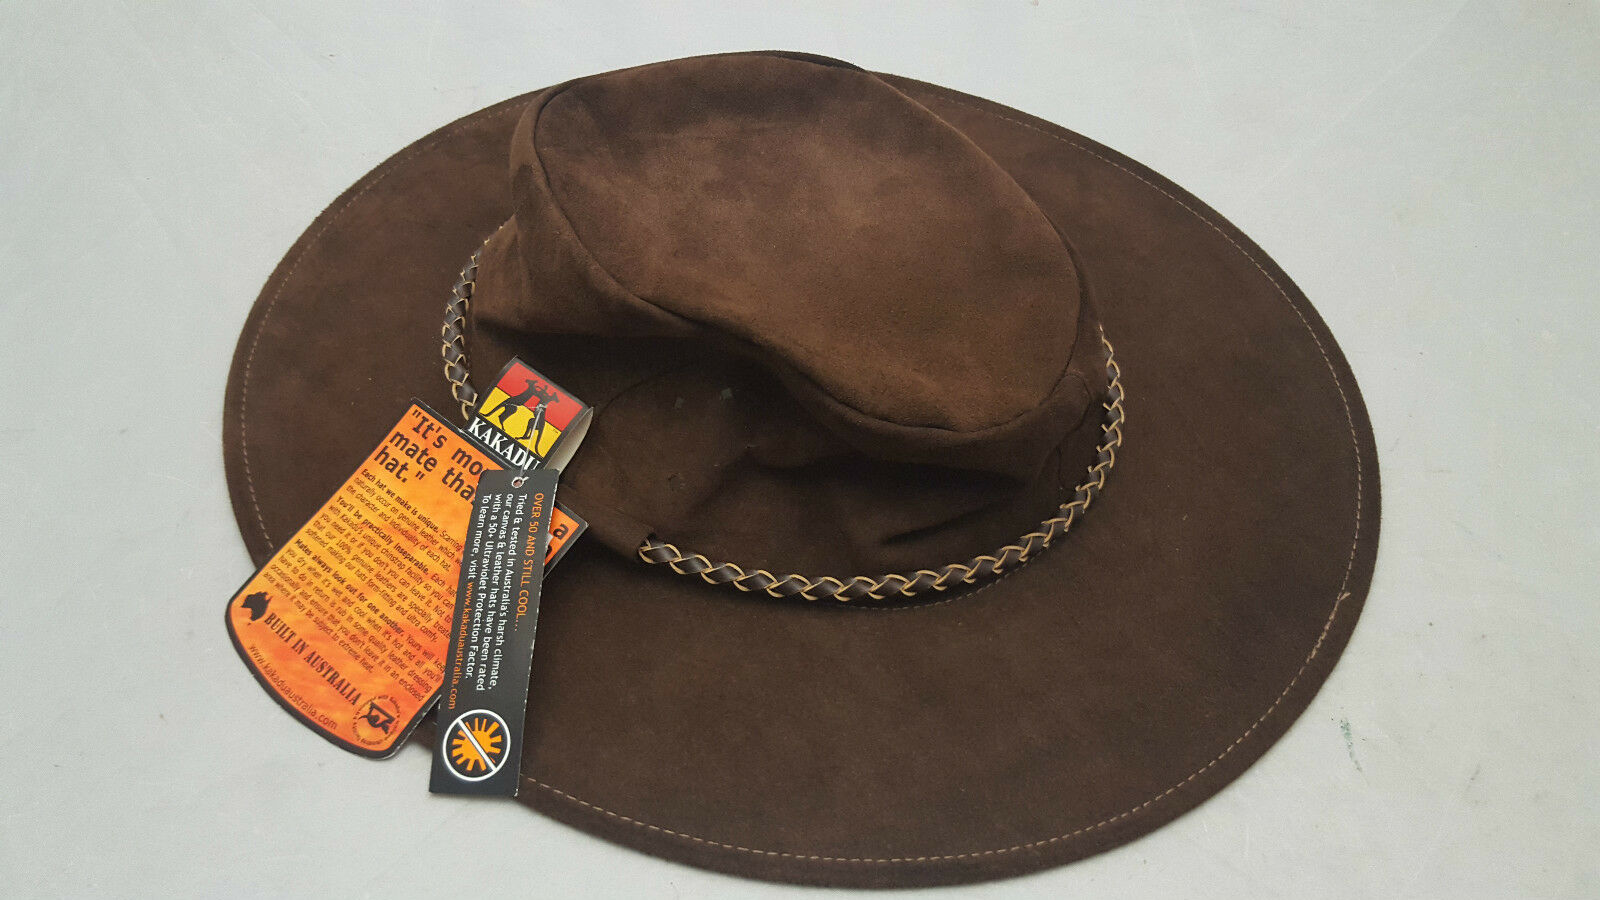 Kakadu Southern Cross Kangaroo Suede Leather Hat Brown Size Small (55cm) NEW